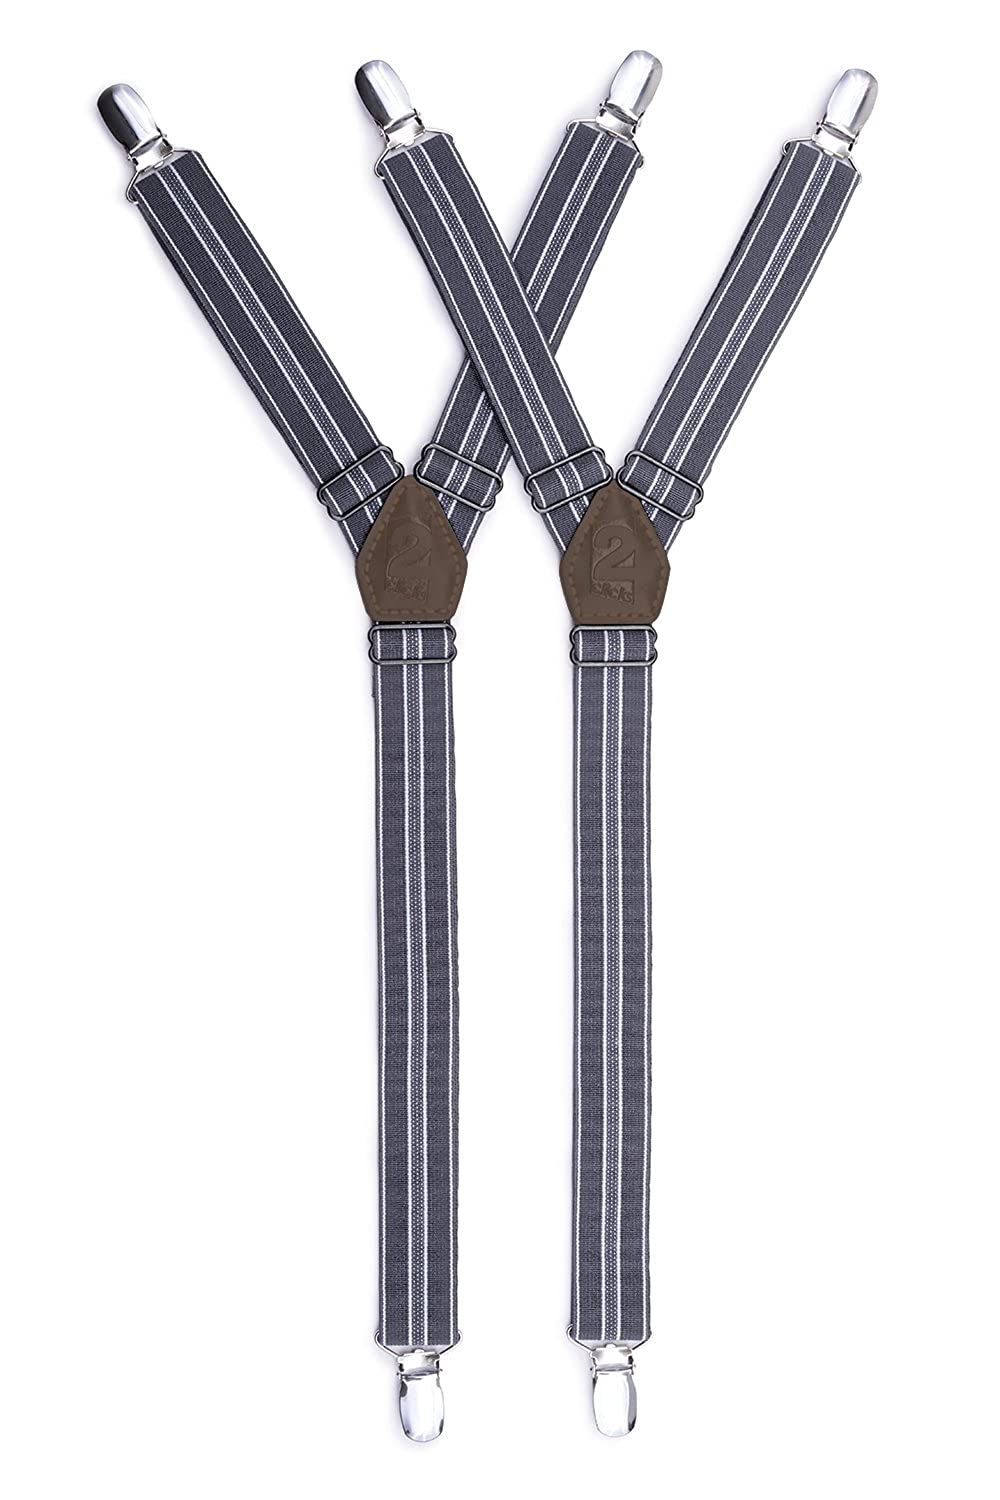 Dapper Y Shaped Shirt Stays - Shirt Suspenders With Adjustable Straps – 1 Pair